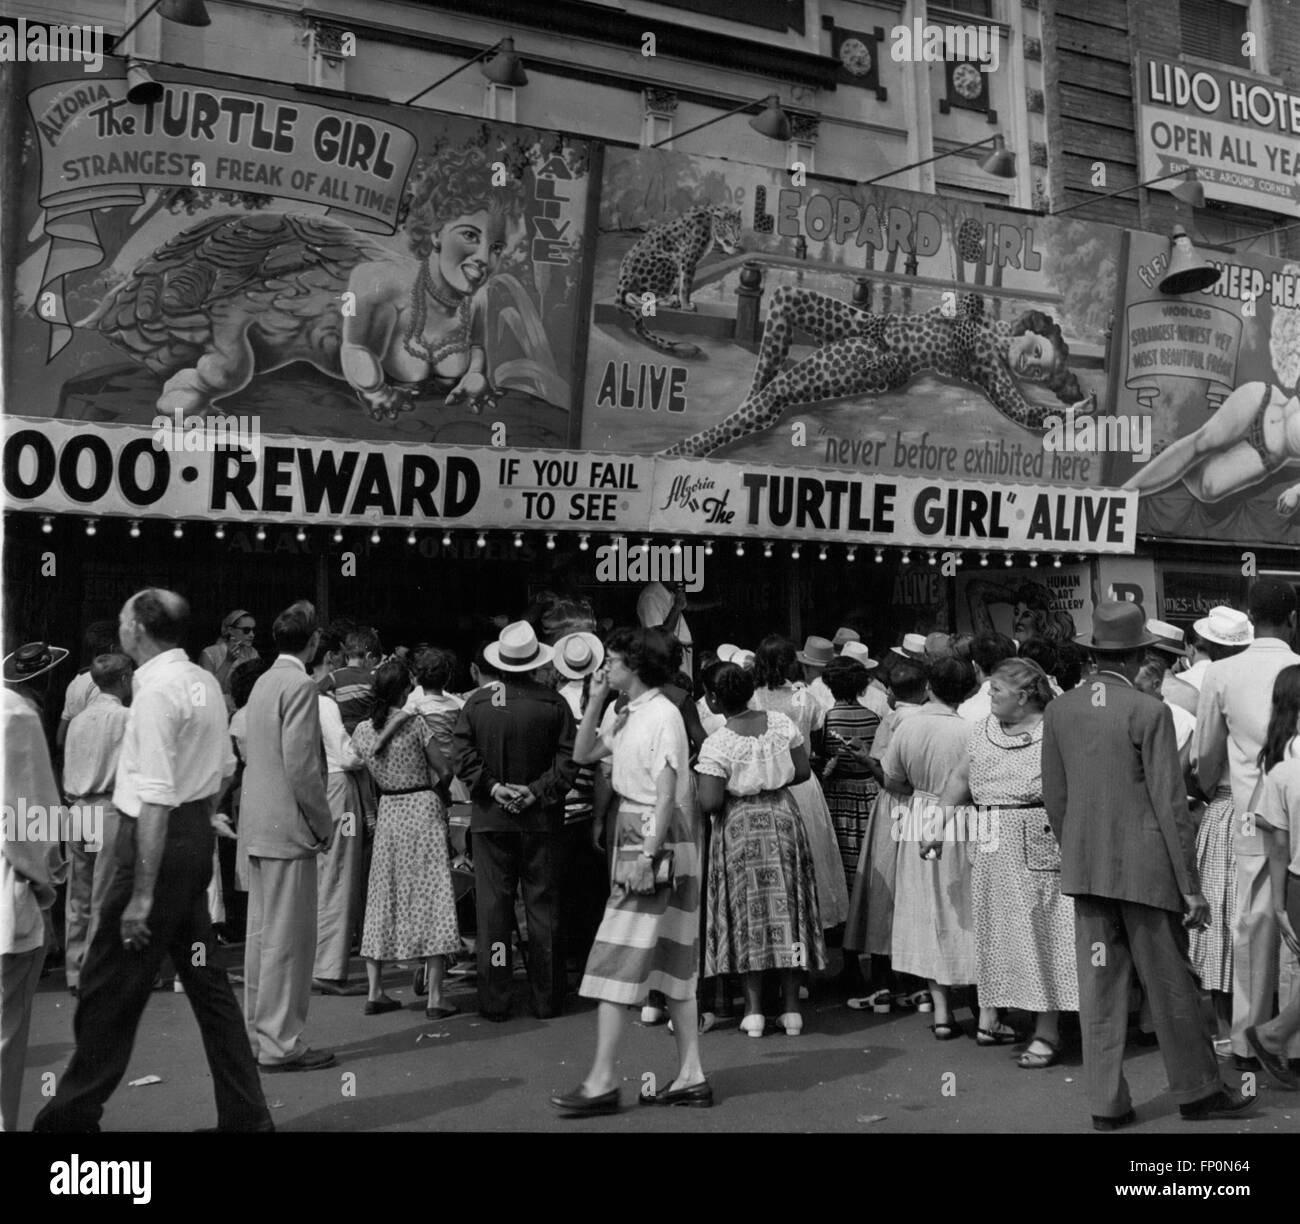 1962 - Coney Island: The freak shows get the crowds at Coney Island. The curiosity that marks us all is the key Stock Photo